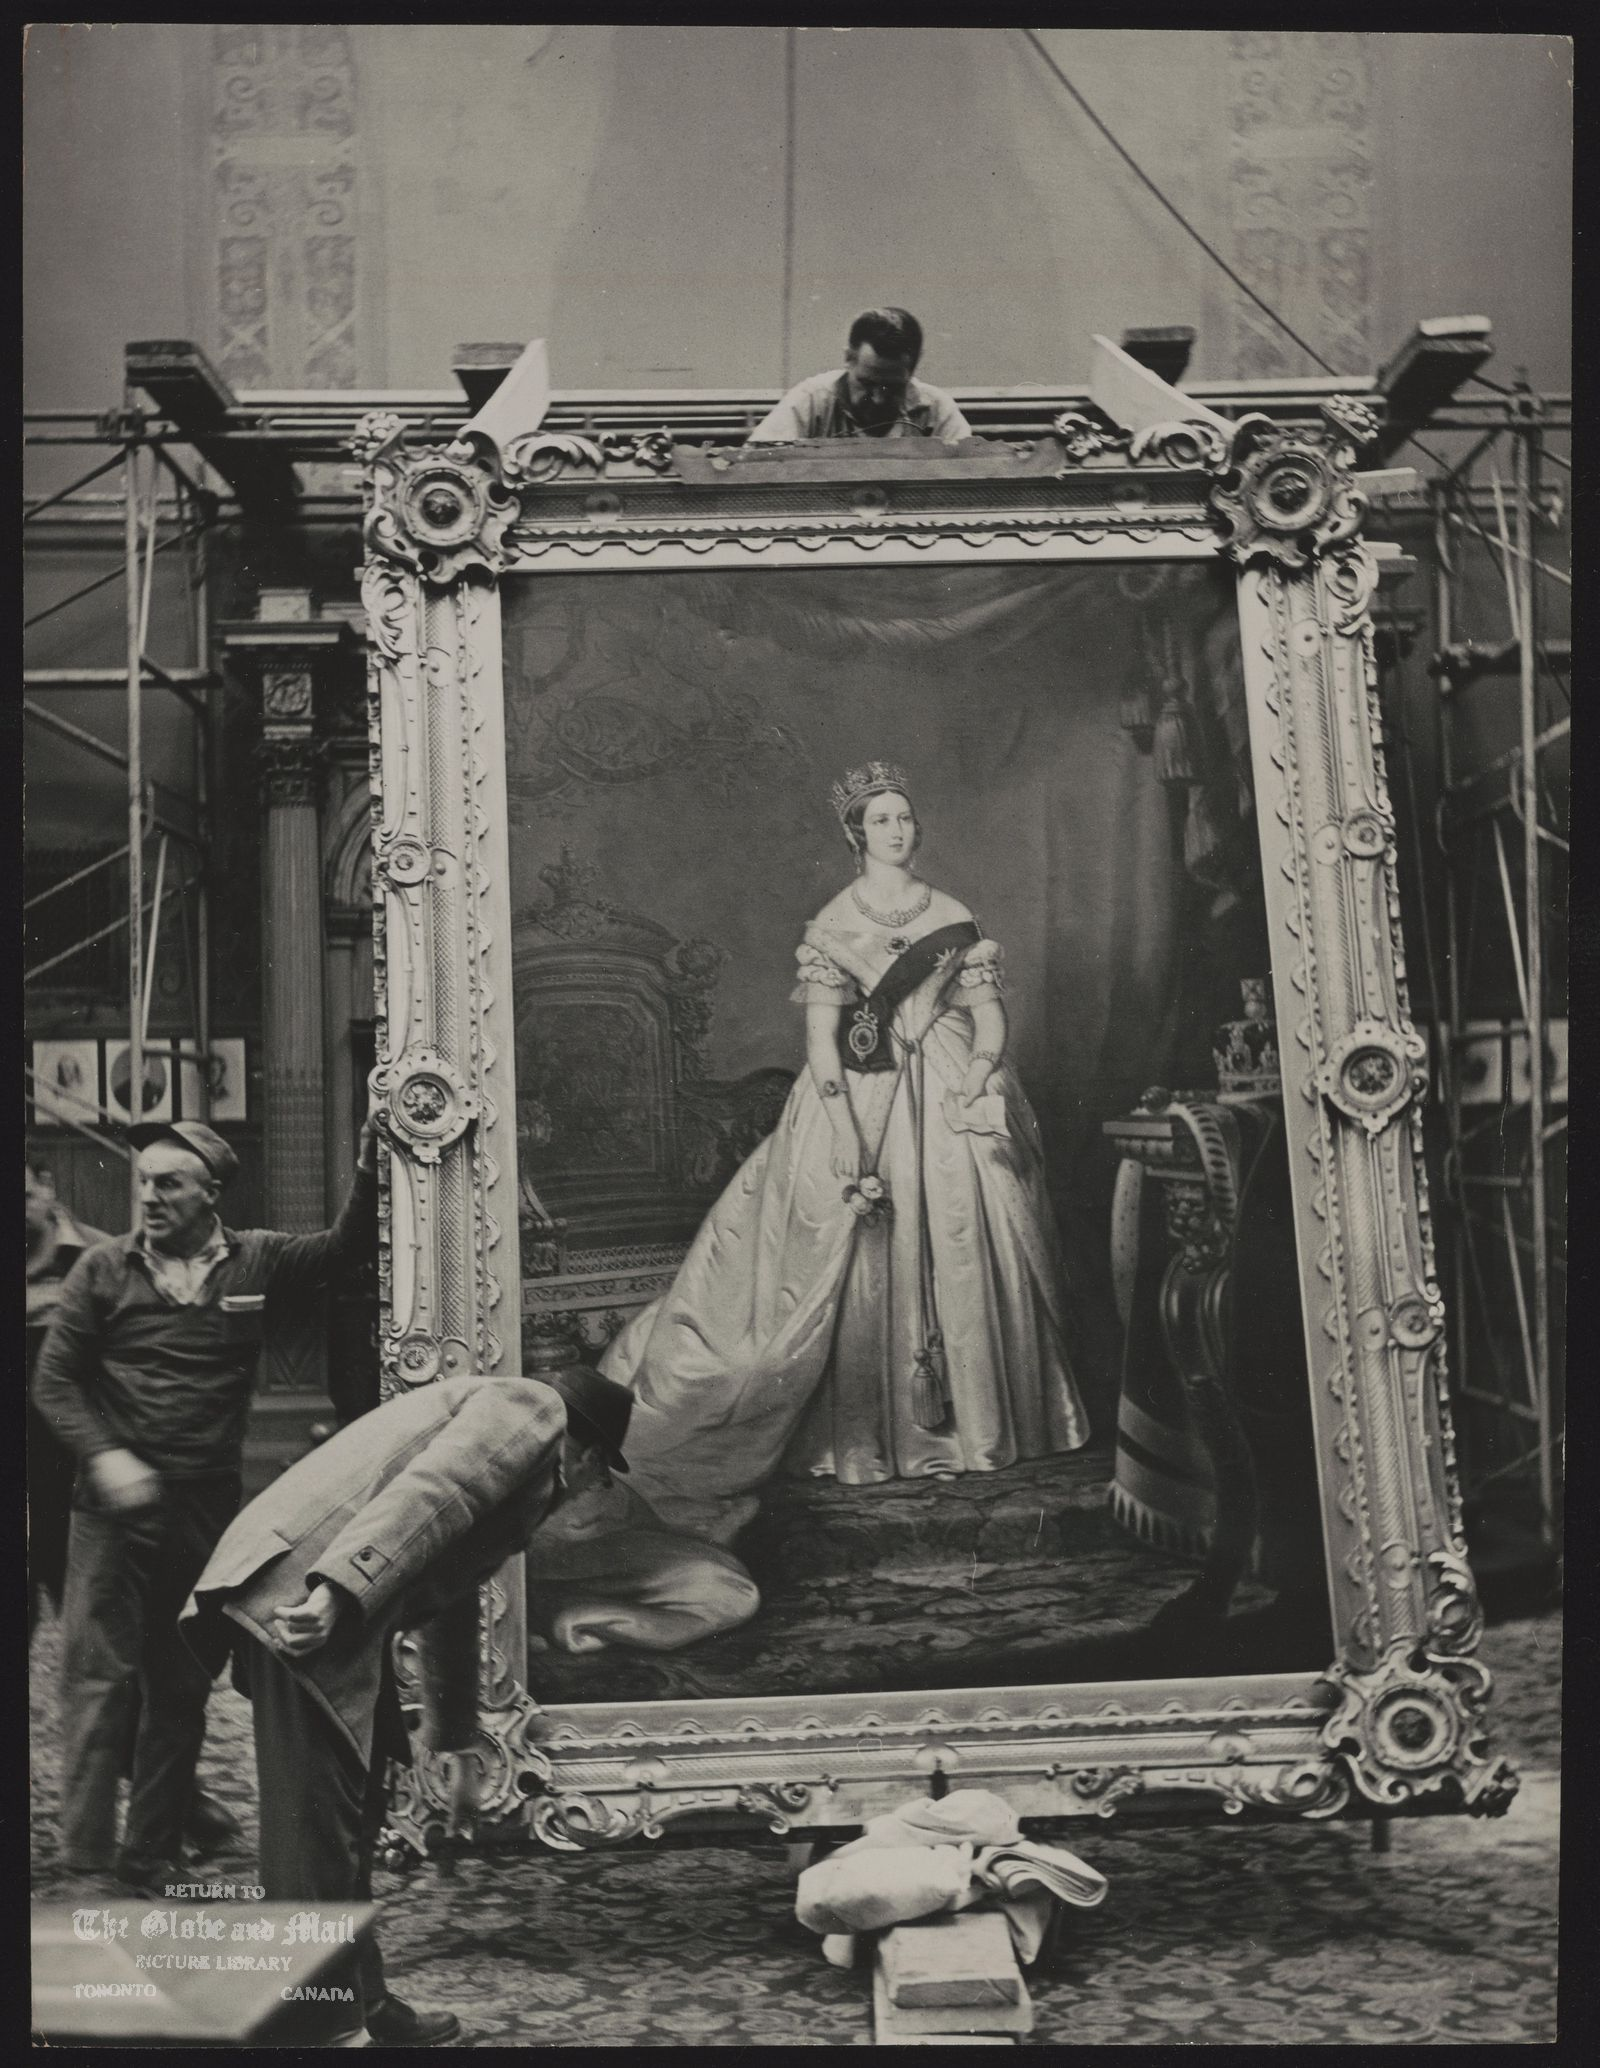 ART Historical 19th century City Council painting of Queen Victoria begins three-day journey to new home in osgoode Hall.